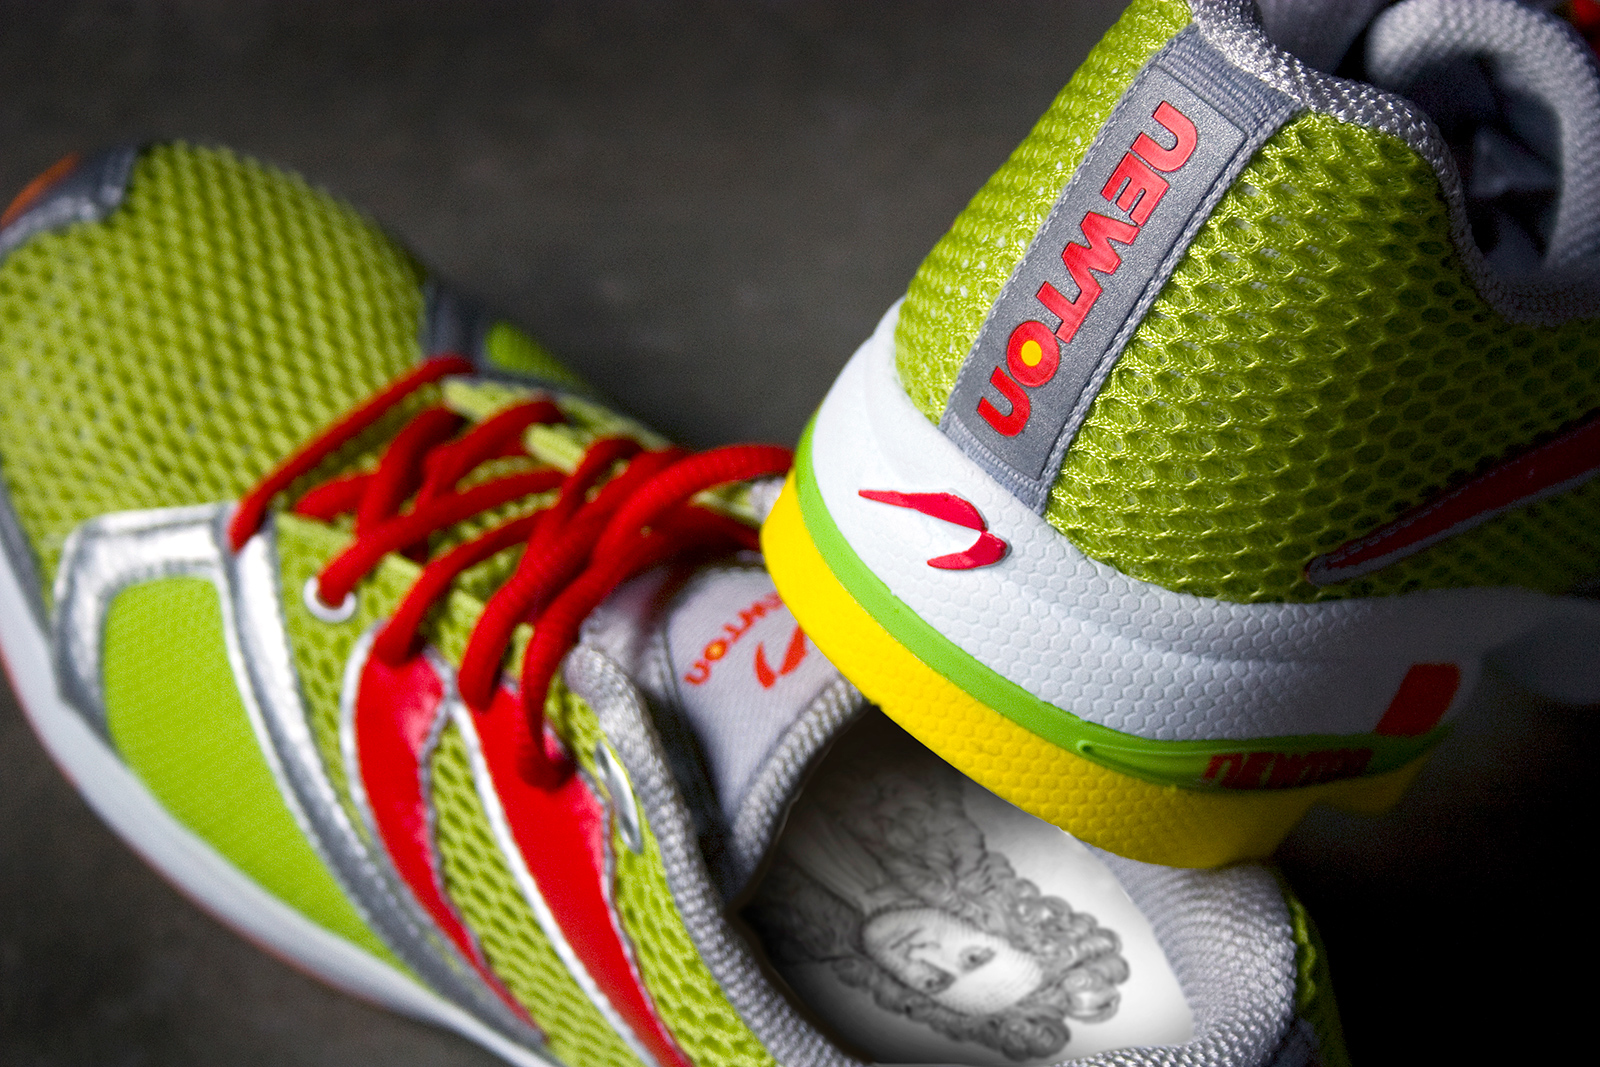 Sir Isaac Newton looking up at you from the custom insole. Details like this brought a cult following to the brand.